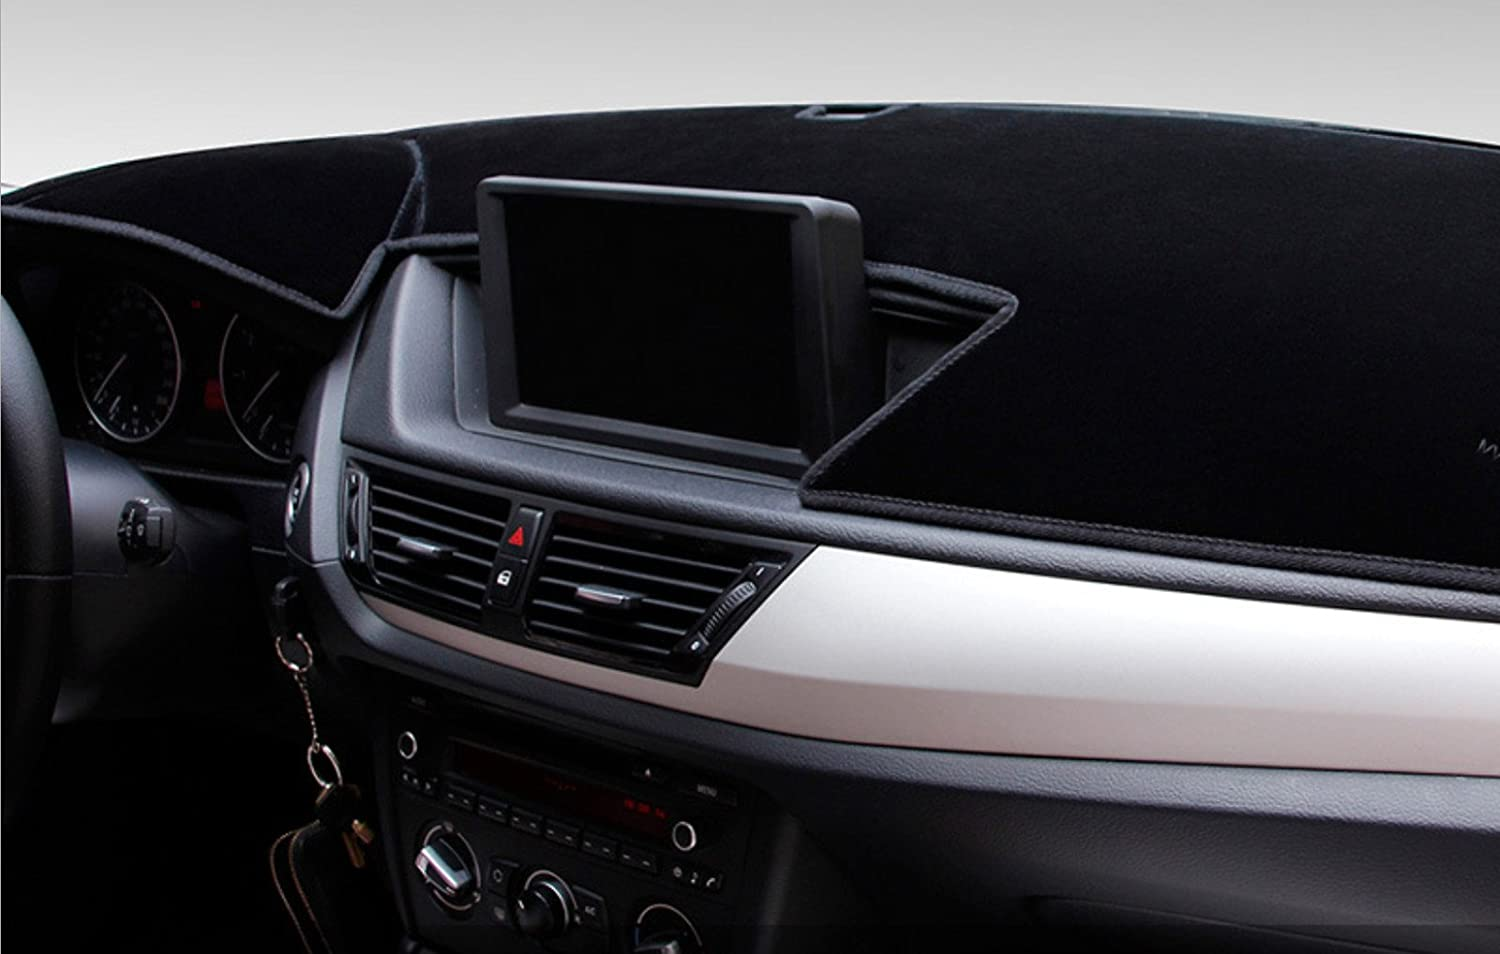 Custom Fit Dashboard Black Center Console Cover Mat Protector Sunshield Cover for Toyota Camry 2012 2013 2014 2015 2016 2017